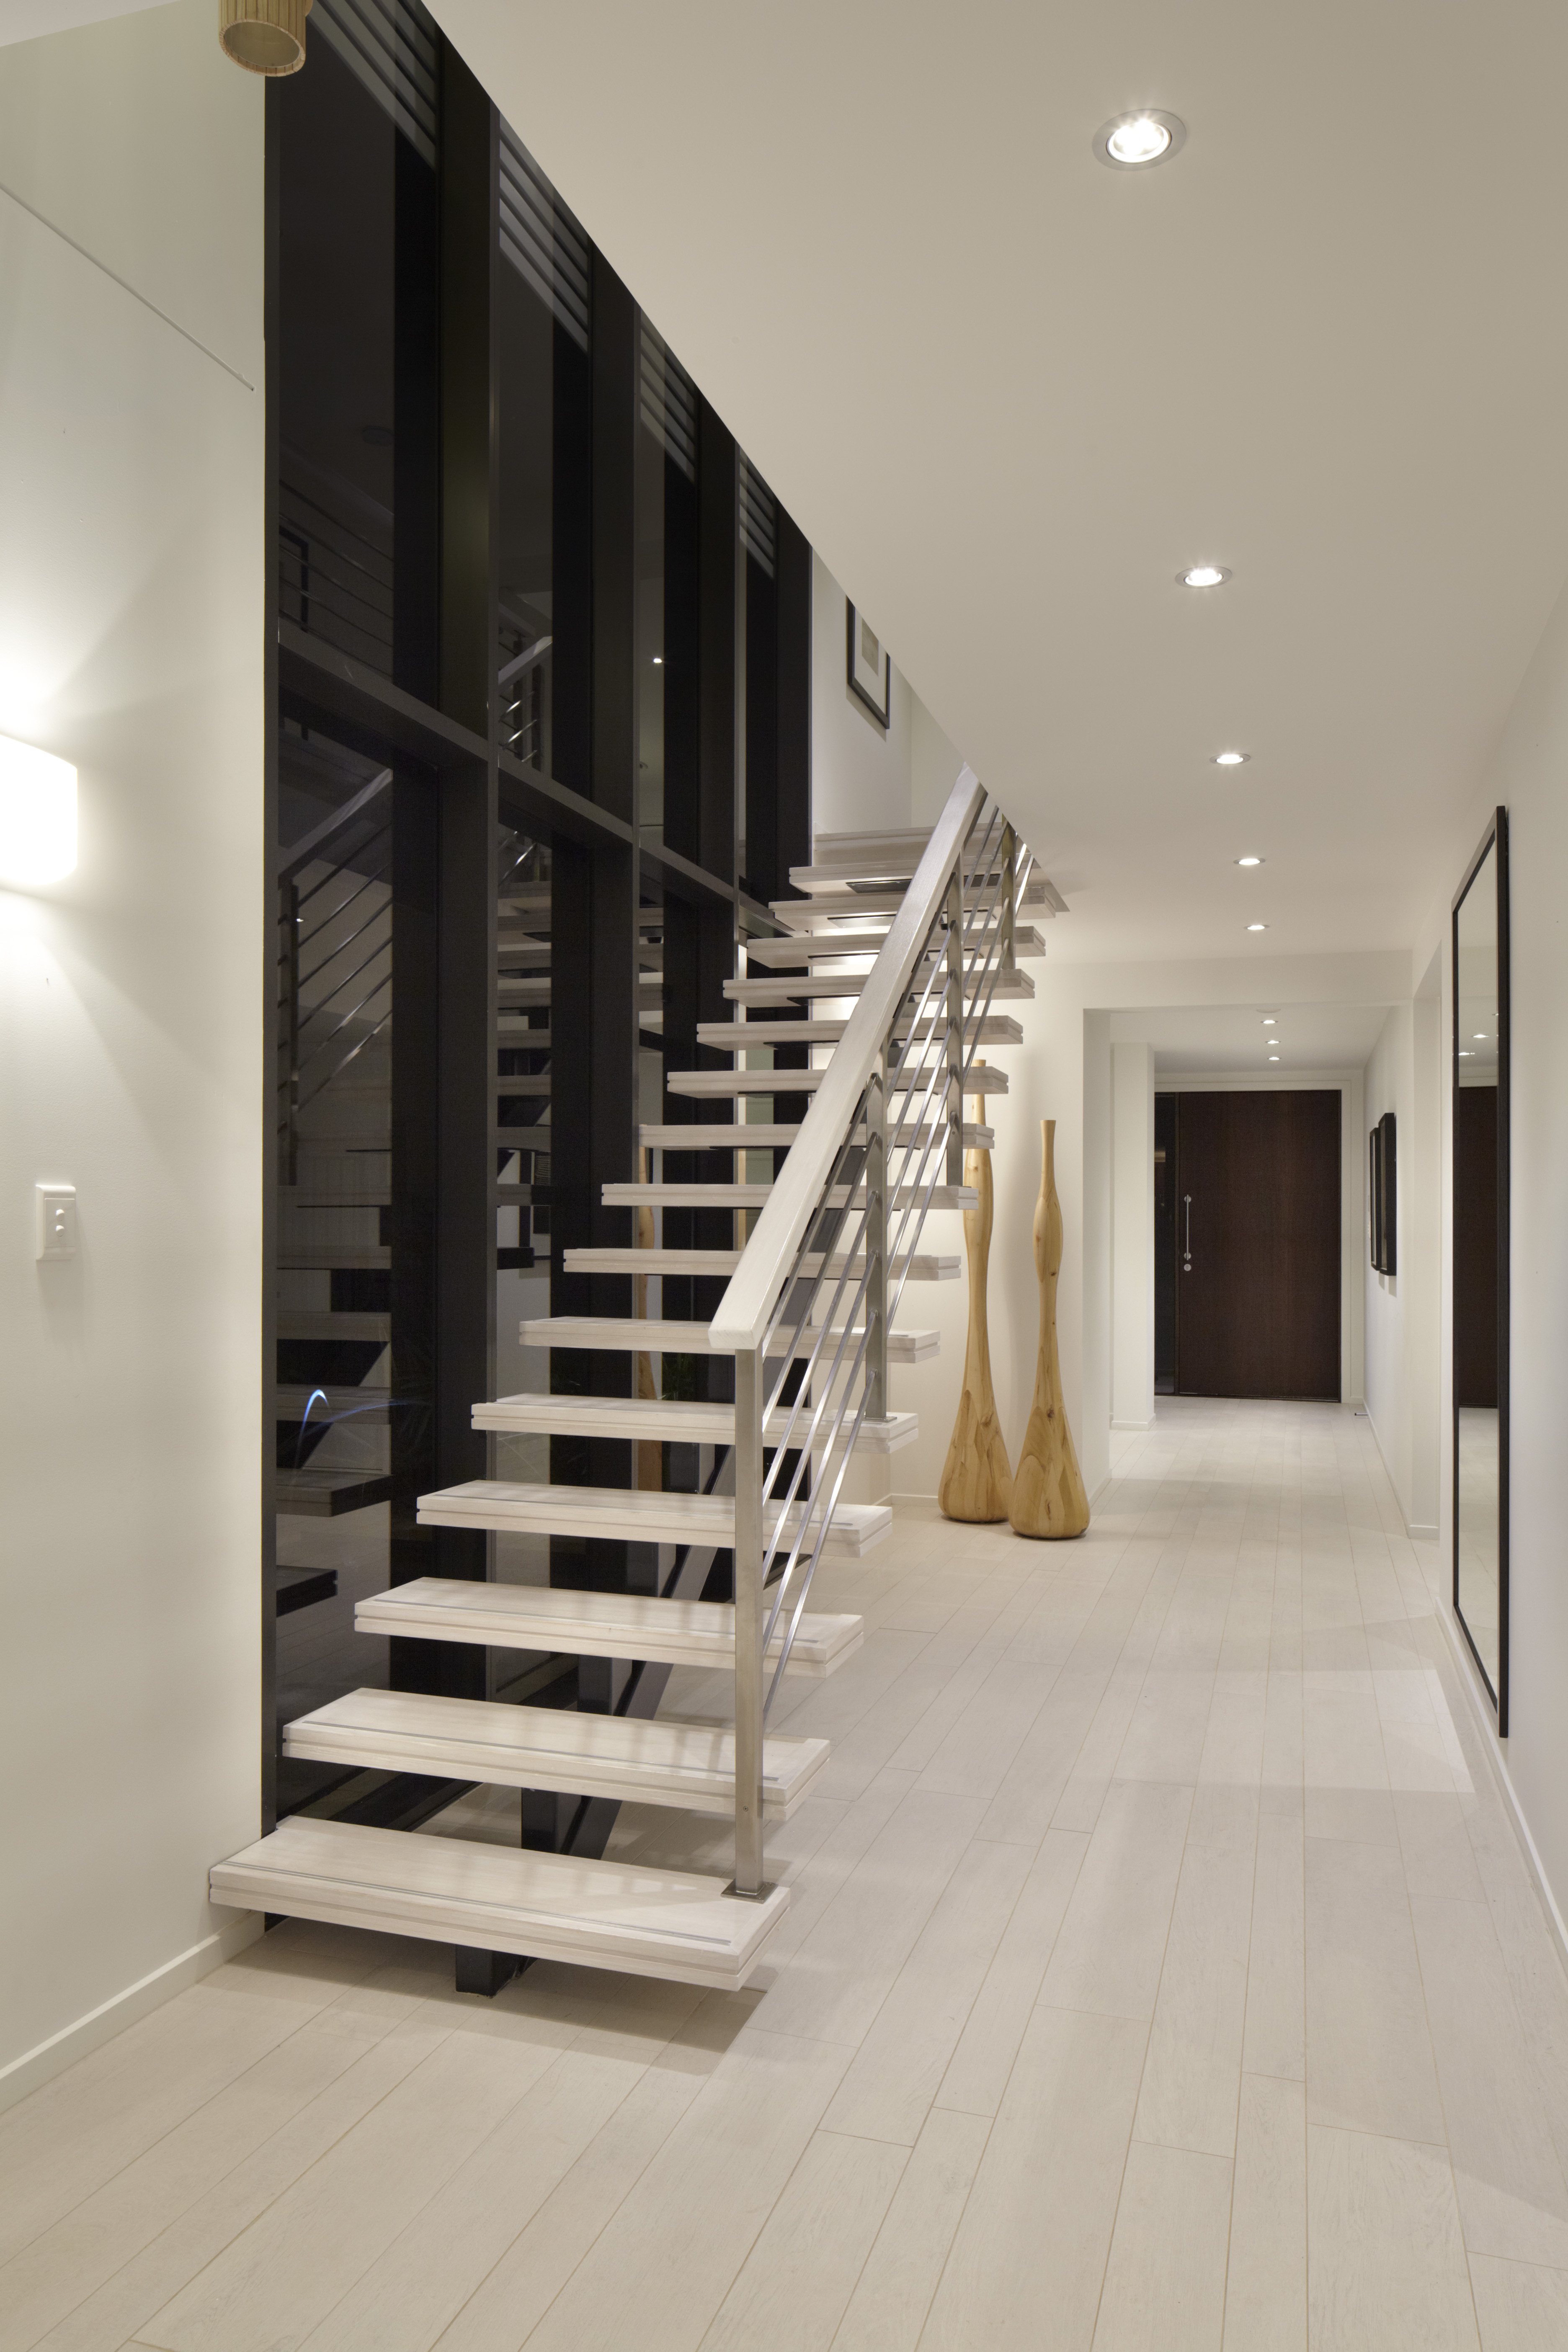 architectural masterpiece: the staircase